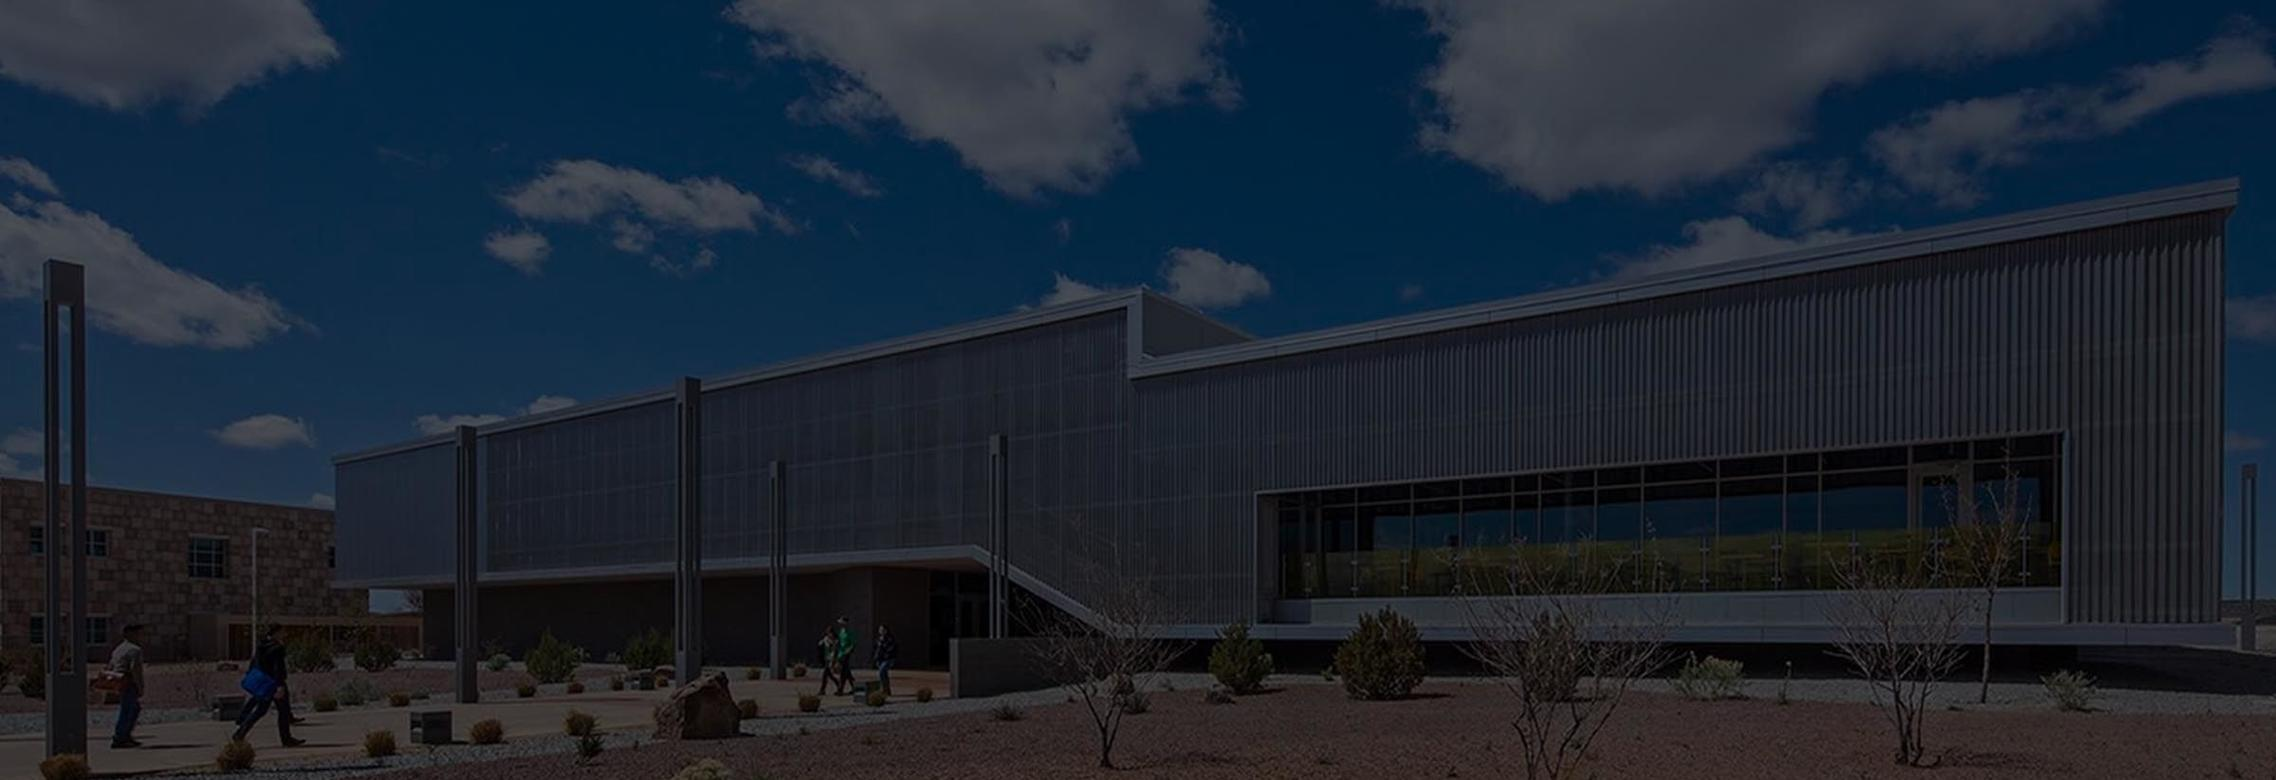 2019-top-of-the-class-technology-expo-central-new-mexico-community-college-workforce-training-center-albuquerque-nm-teaser-image